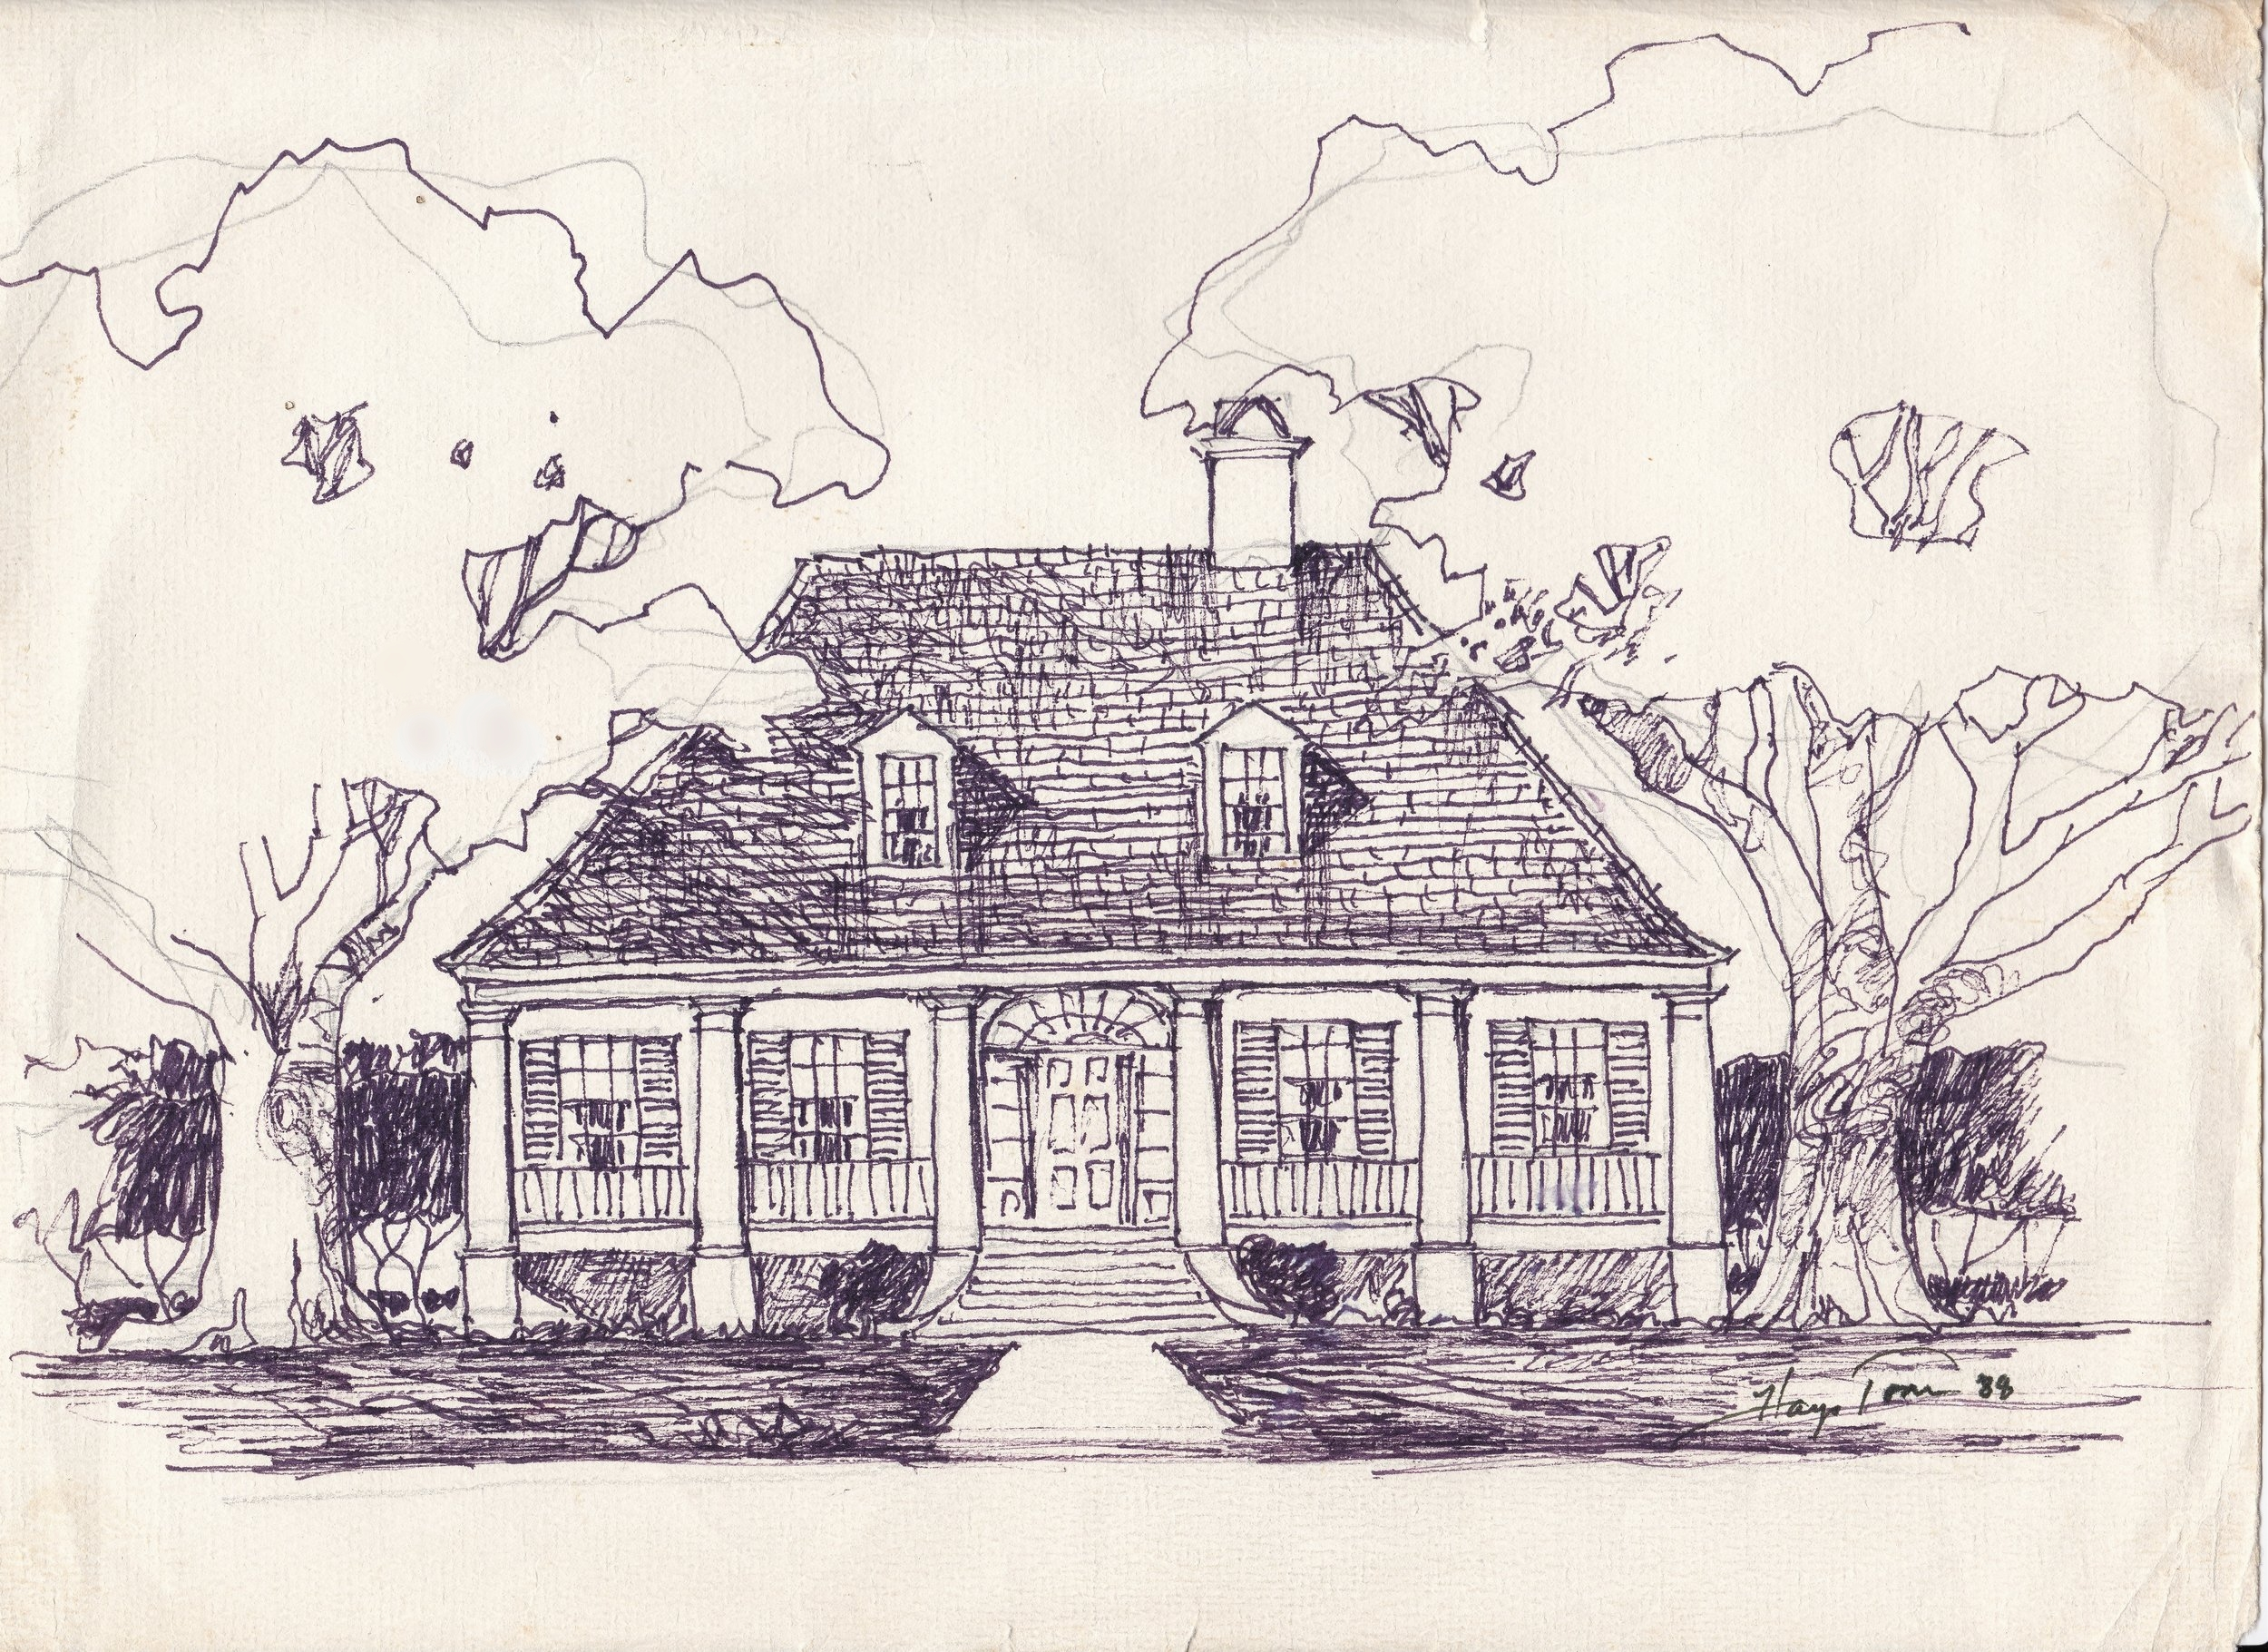 Original hand drawn sketch by A. Hays Town for Debbie Bourgeois, 1988.